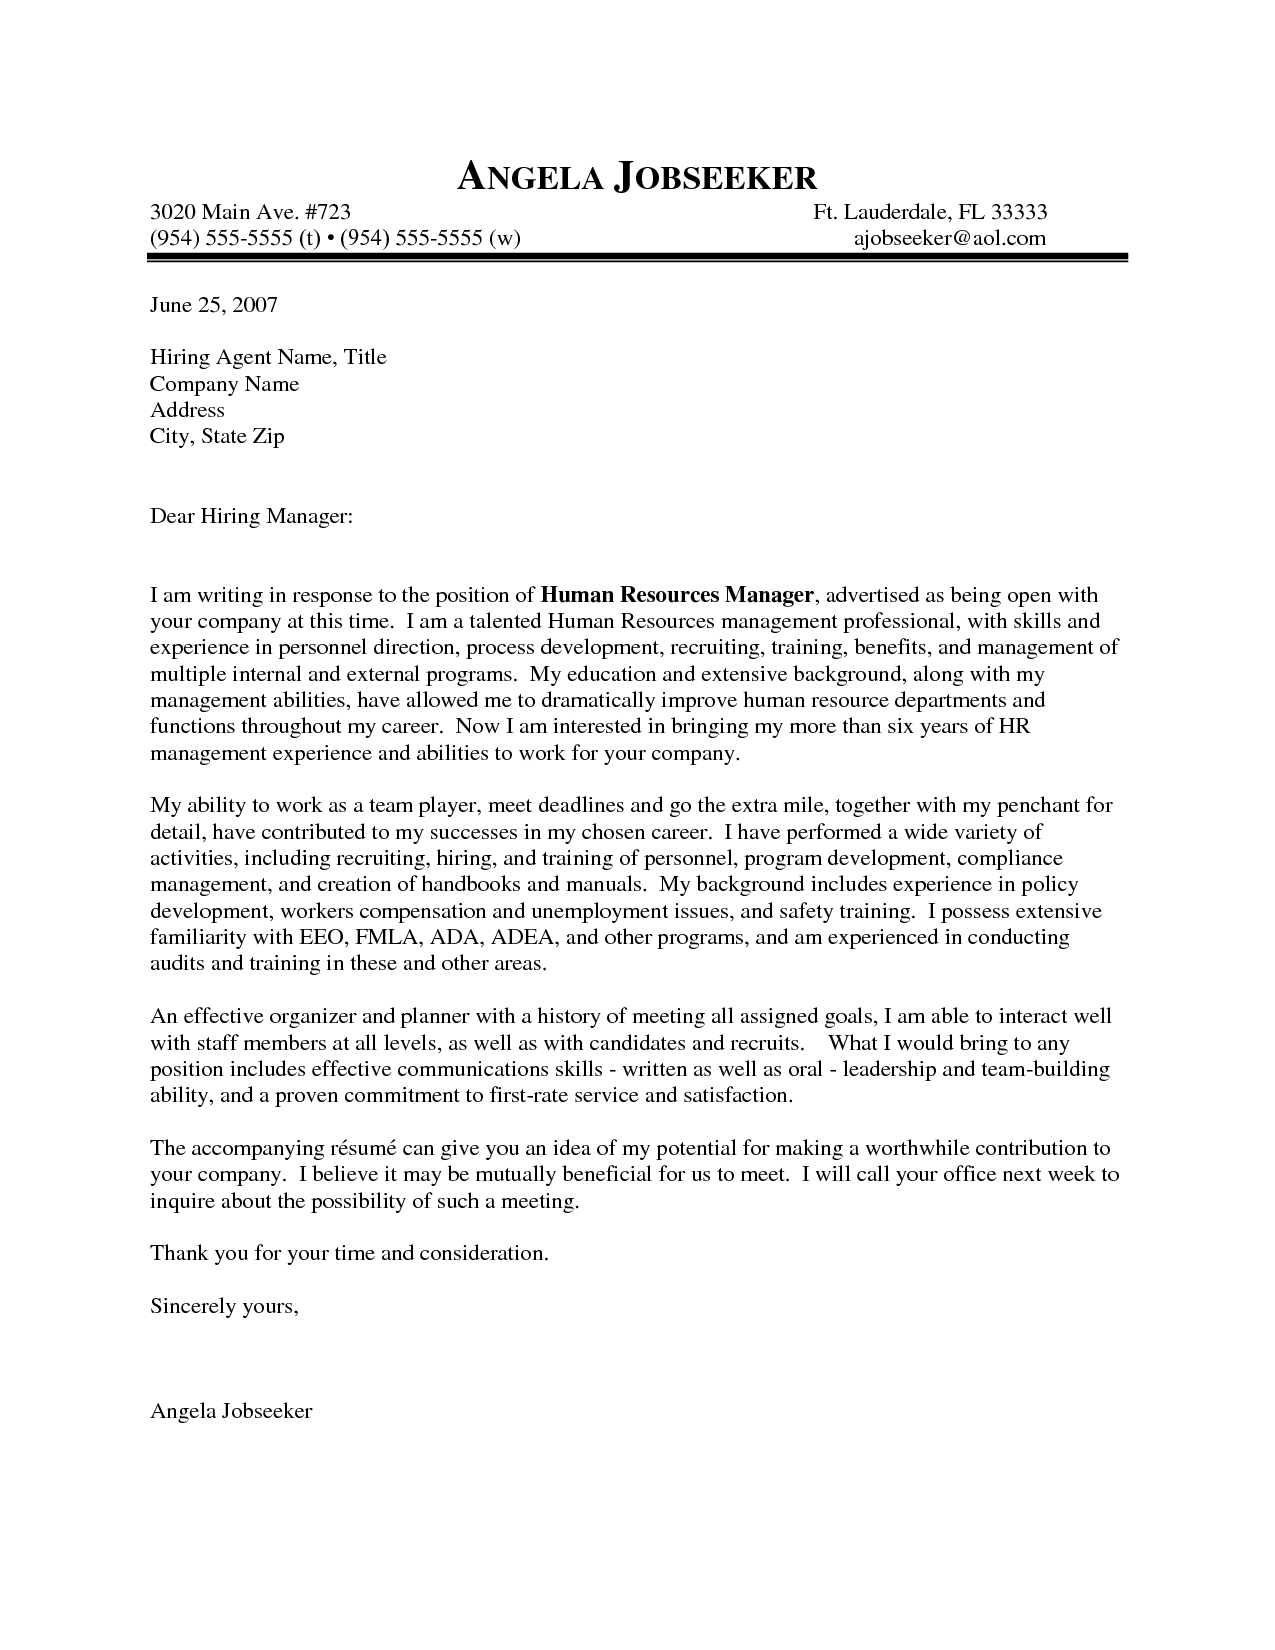 Sample Of Cover Letter Unique Outstanding Cover Letter Examples  Hr Manager Cover Letter Design Inspiration